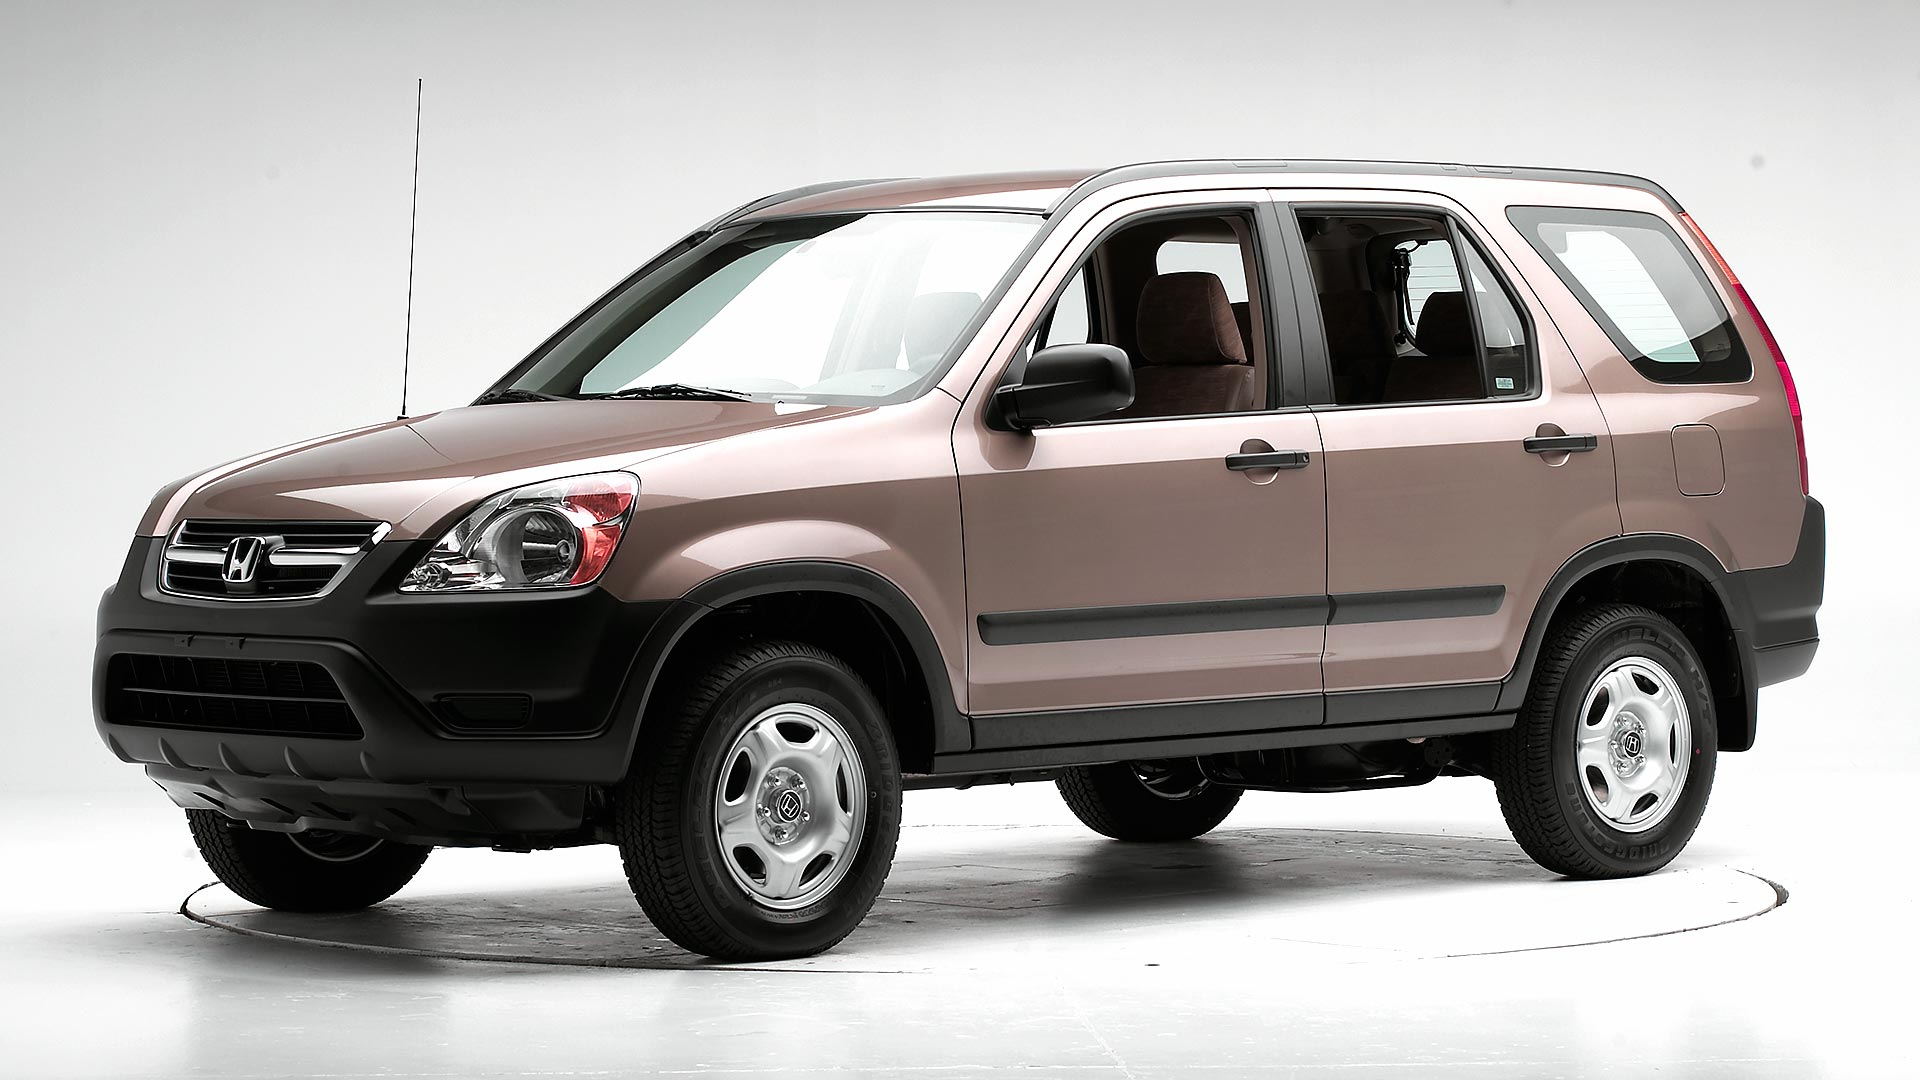 2003 Honda CR-V 4-door SUV